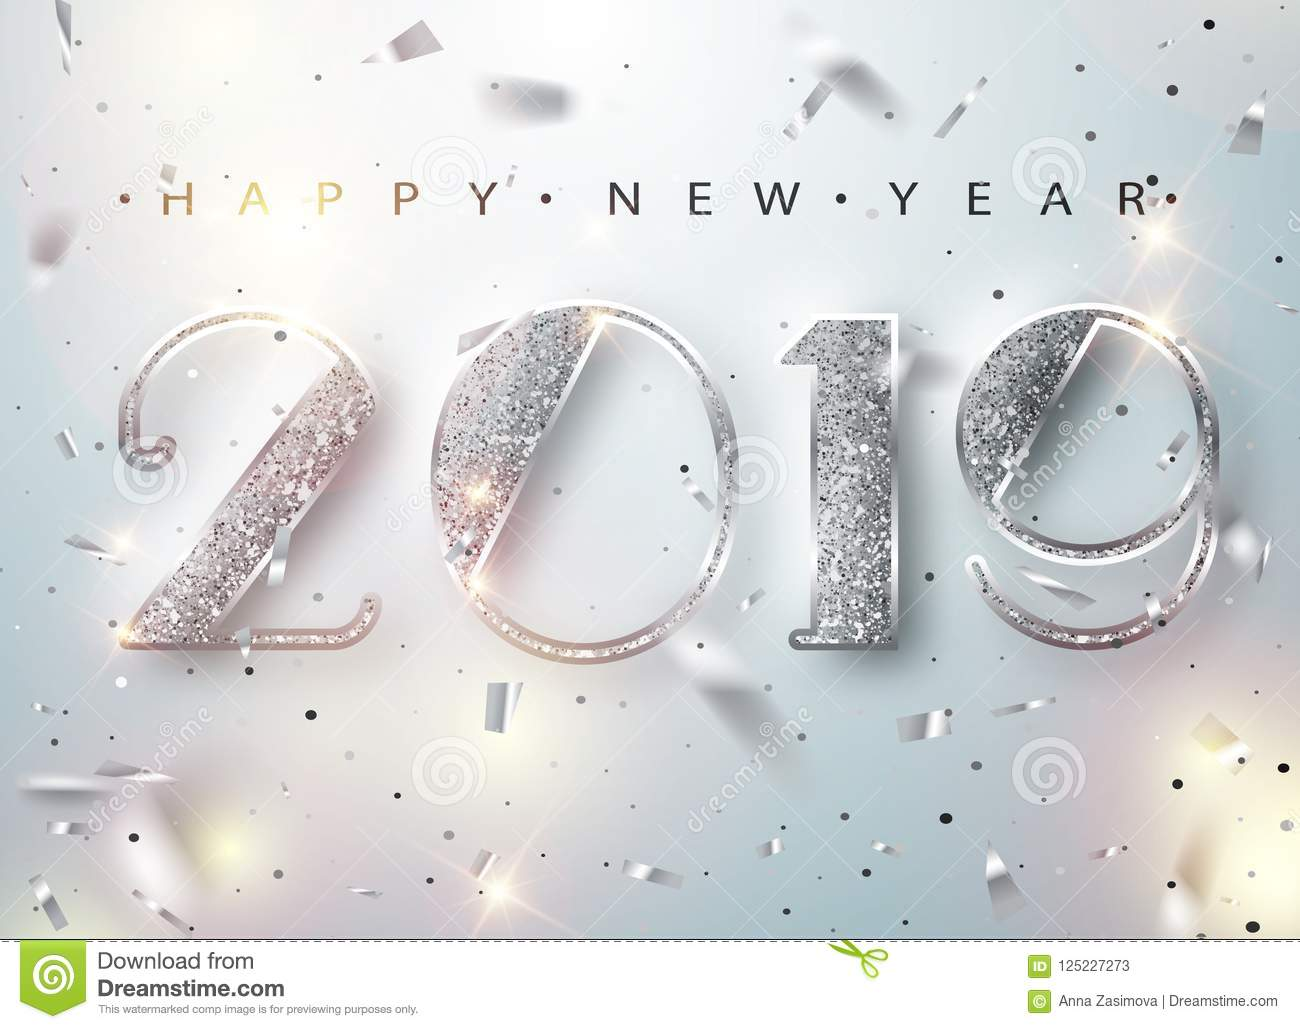 Happy New Year 2019 Greeting Card with Silver Numbers and Confetti Frame on White Background. Vector Illustration. Merry